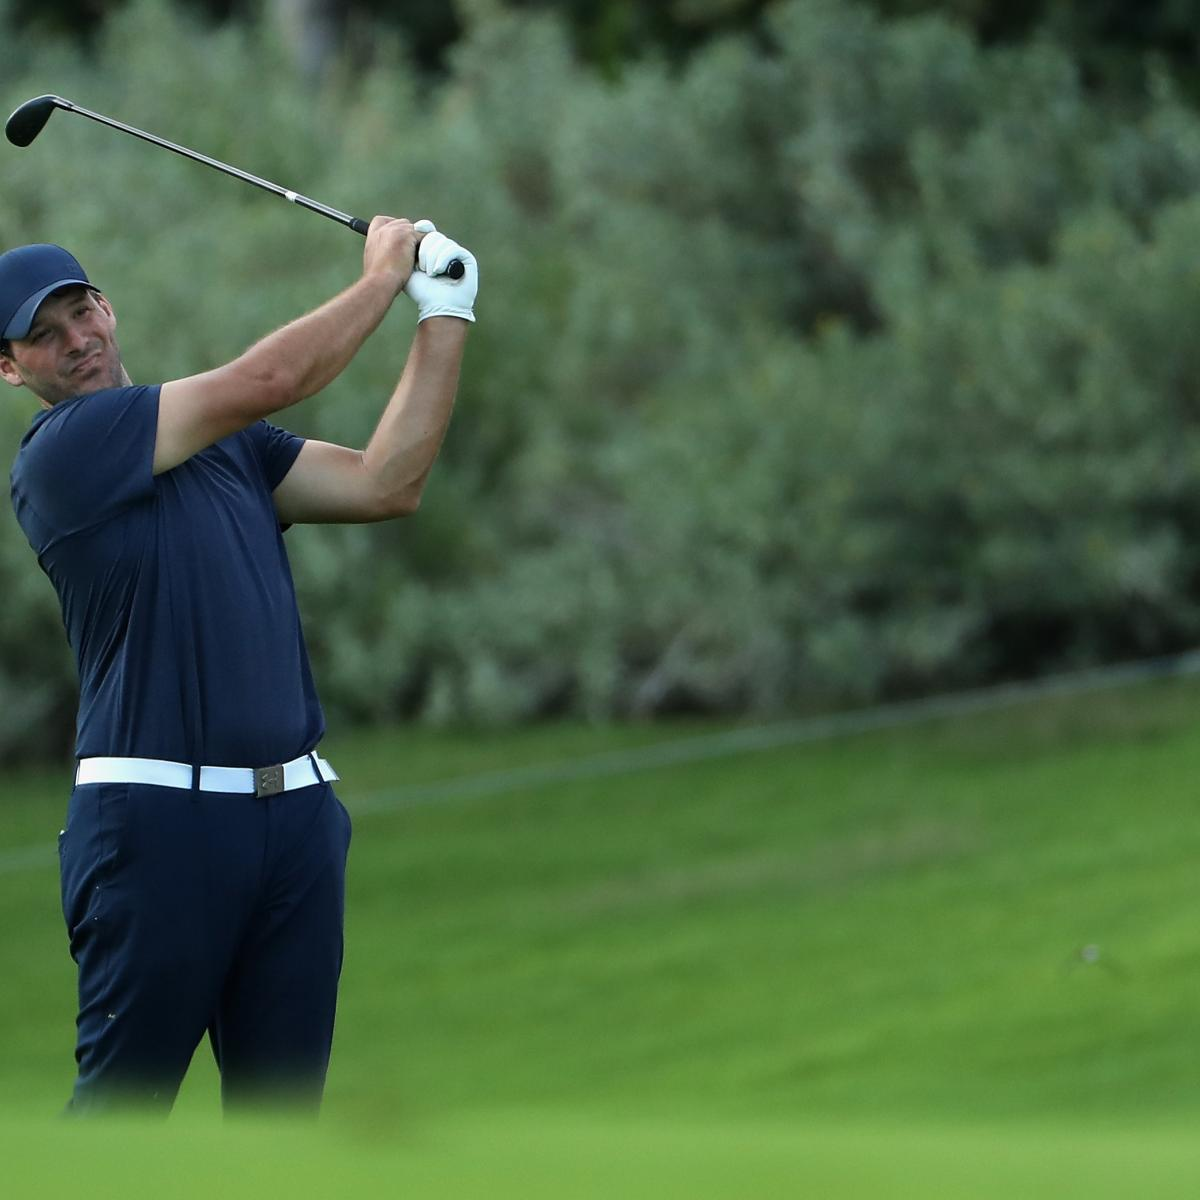 Edgewood tahoe golf course celebrity news